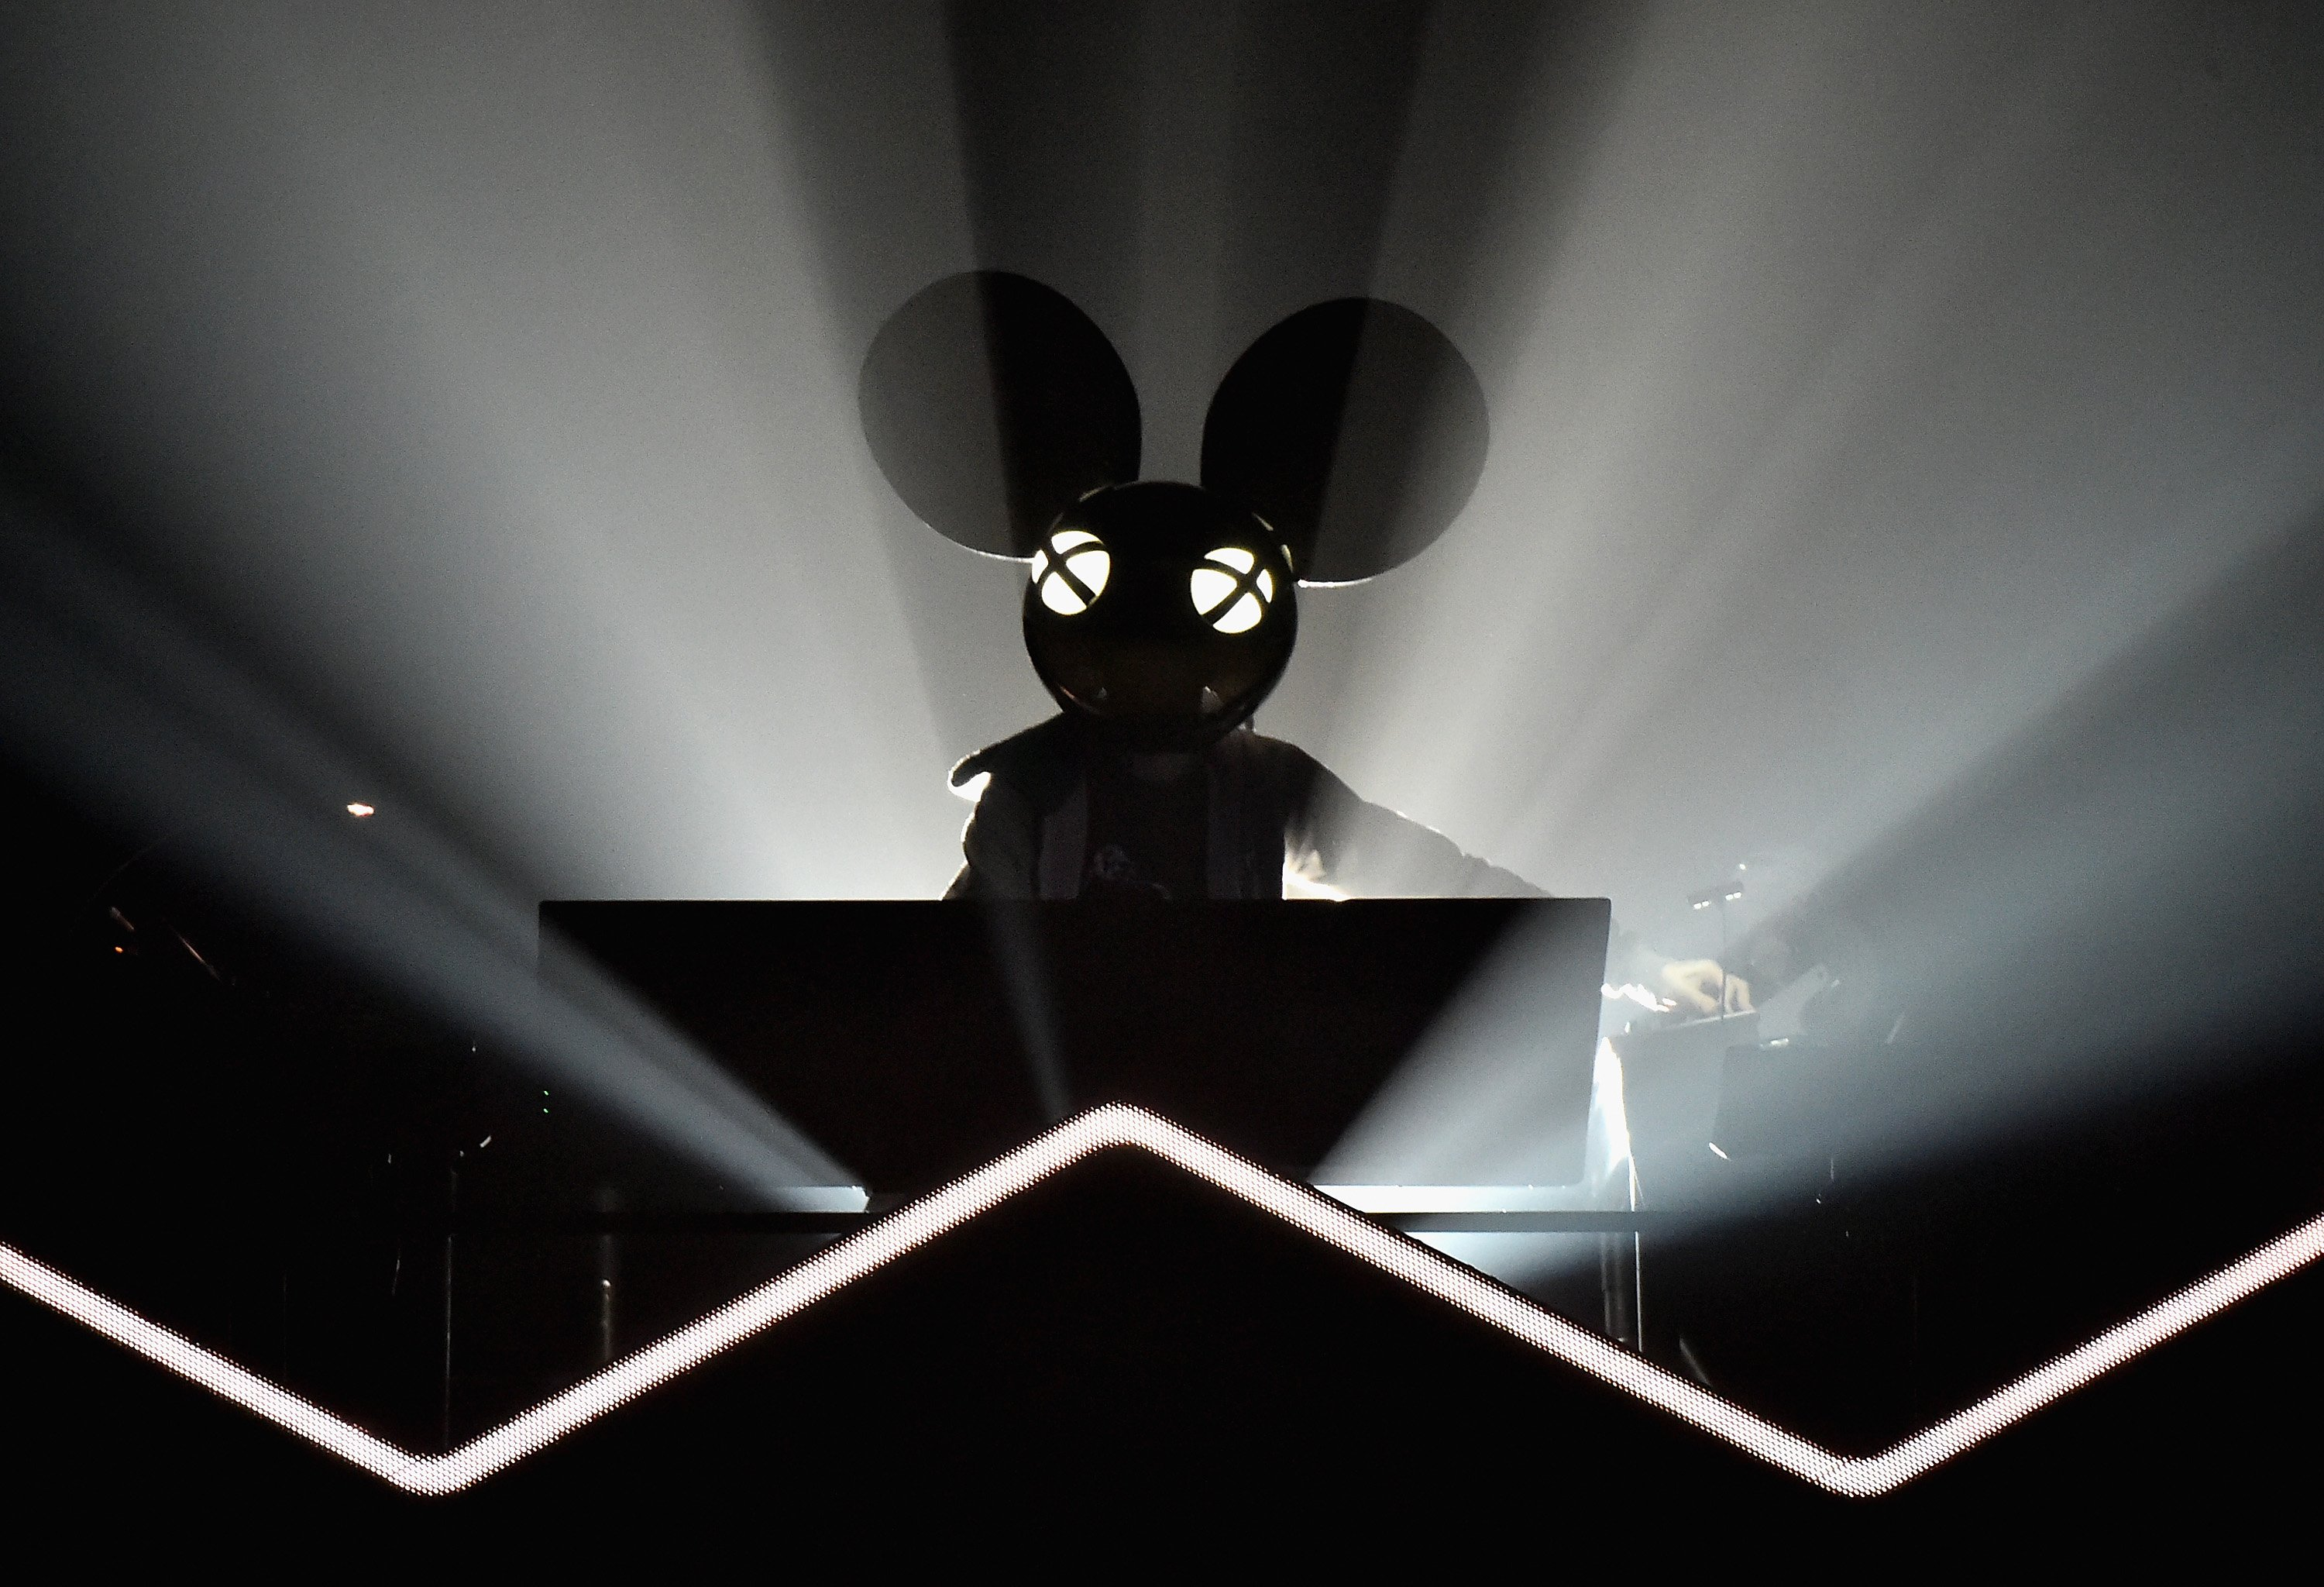 A Day With Deadmau5 on March 31, 2017 in New York City. (Photo by Theo Wargo/Getty Images)